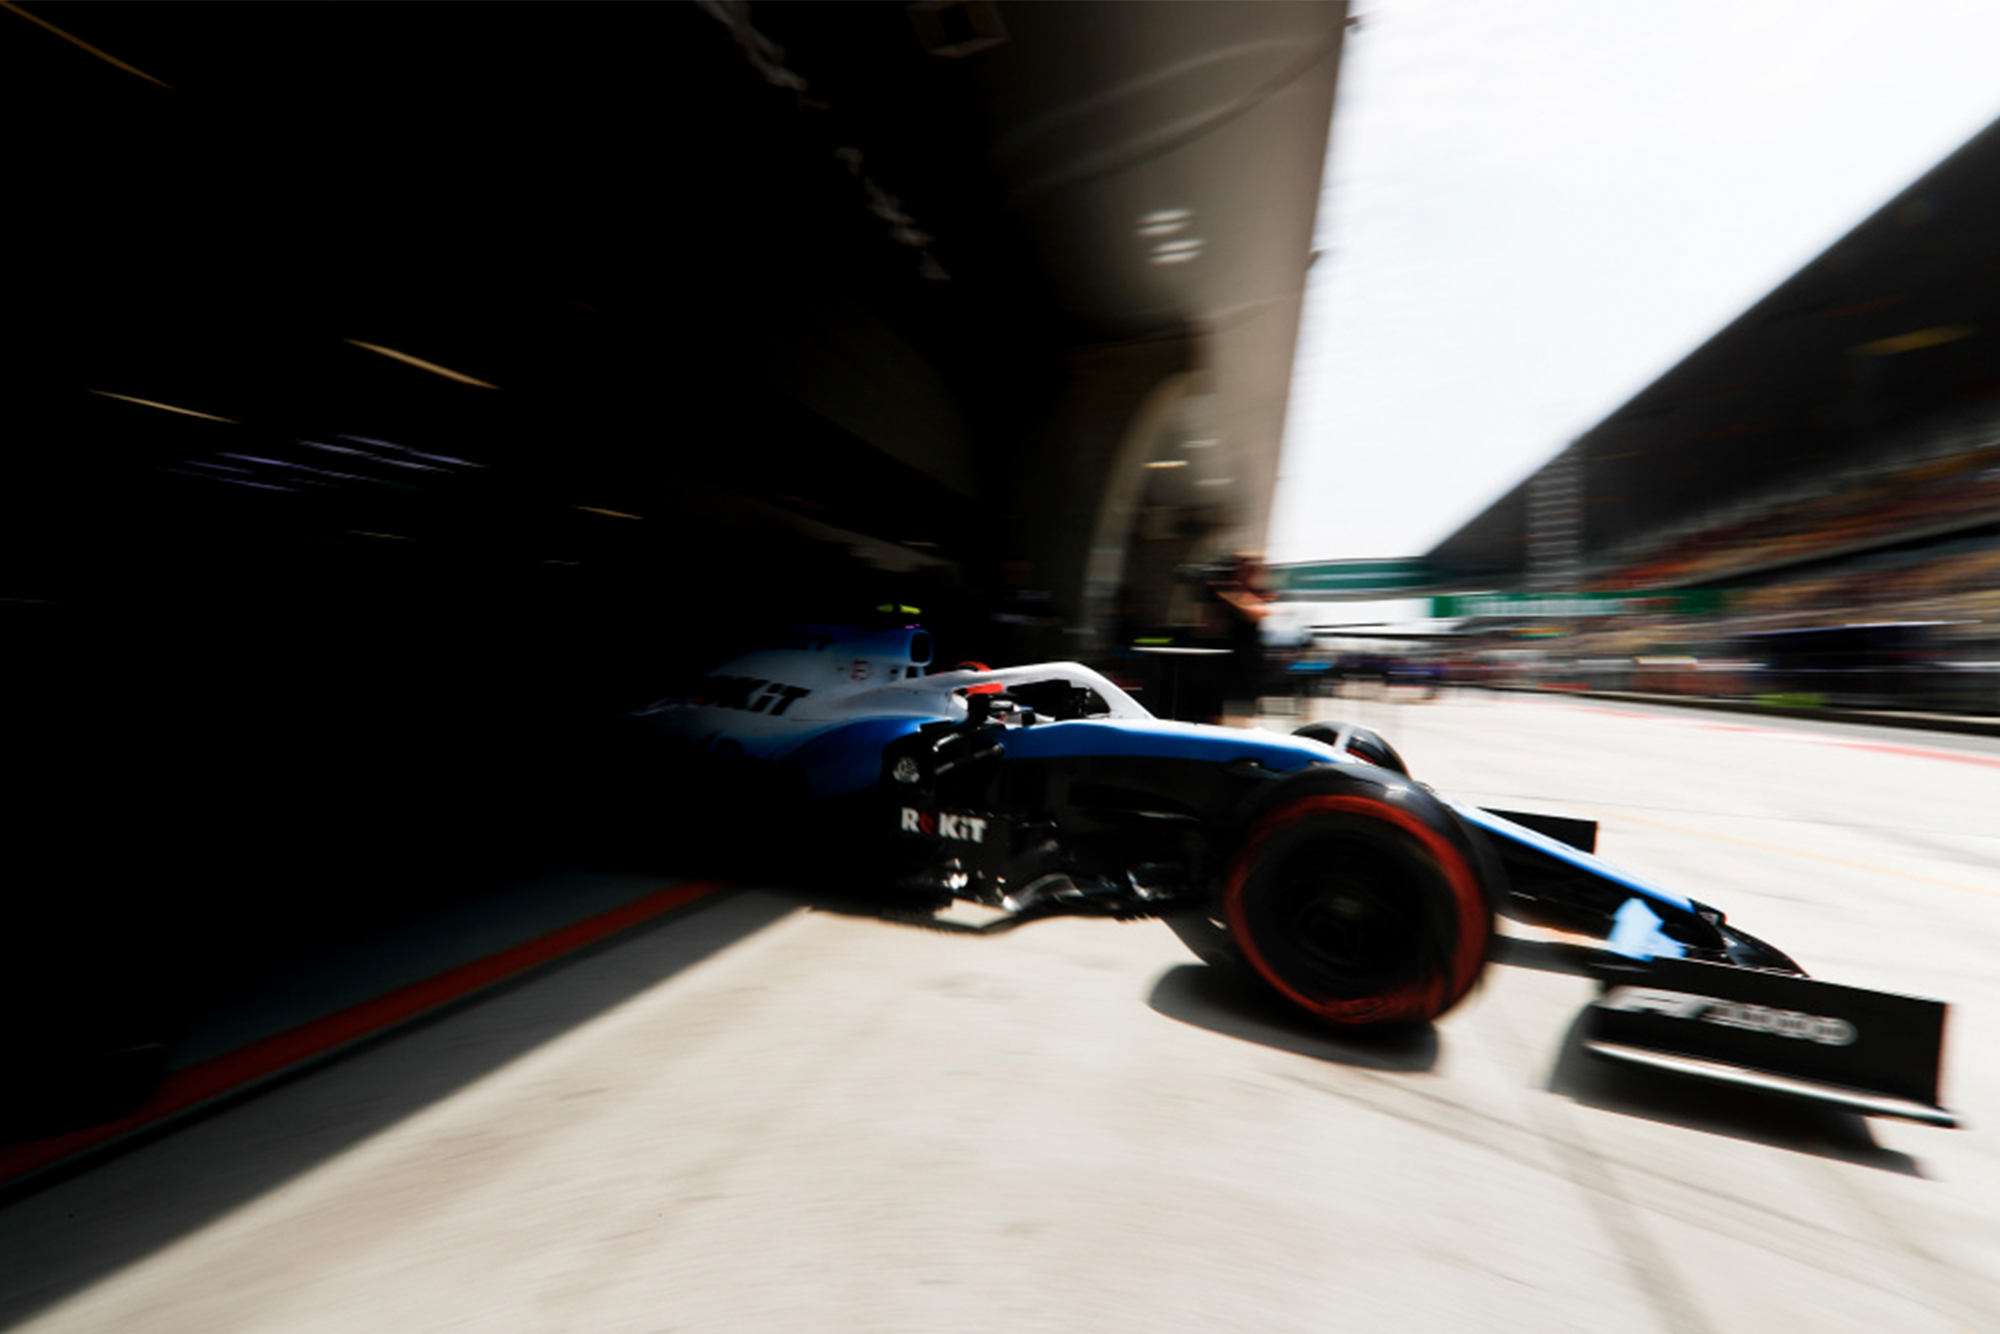 A Williams leaves the garage during the 2019 F1 season